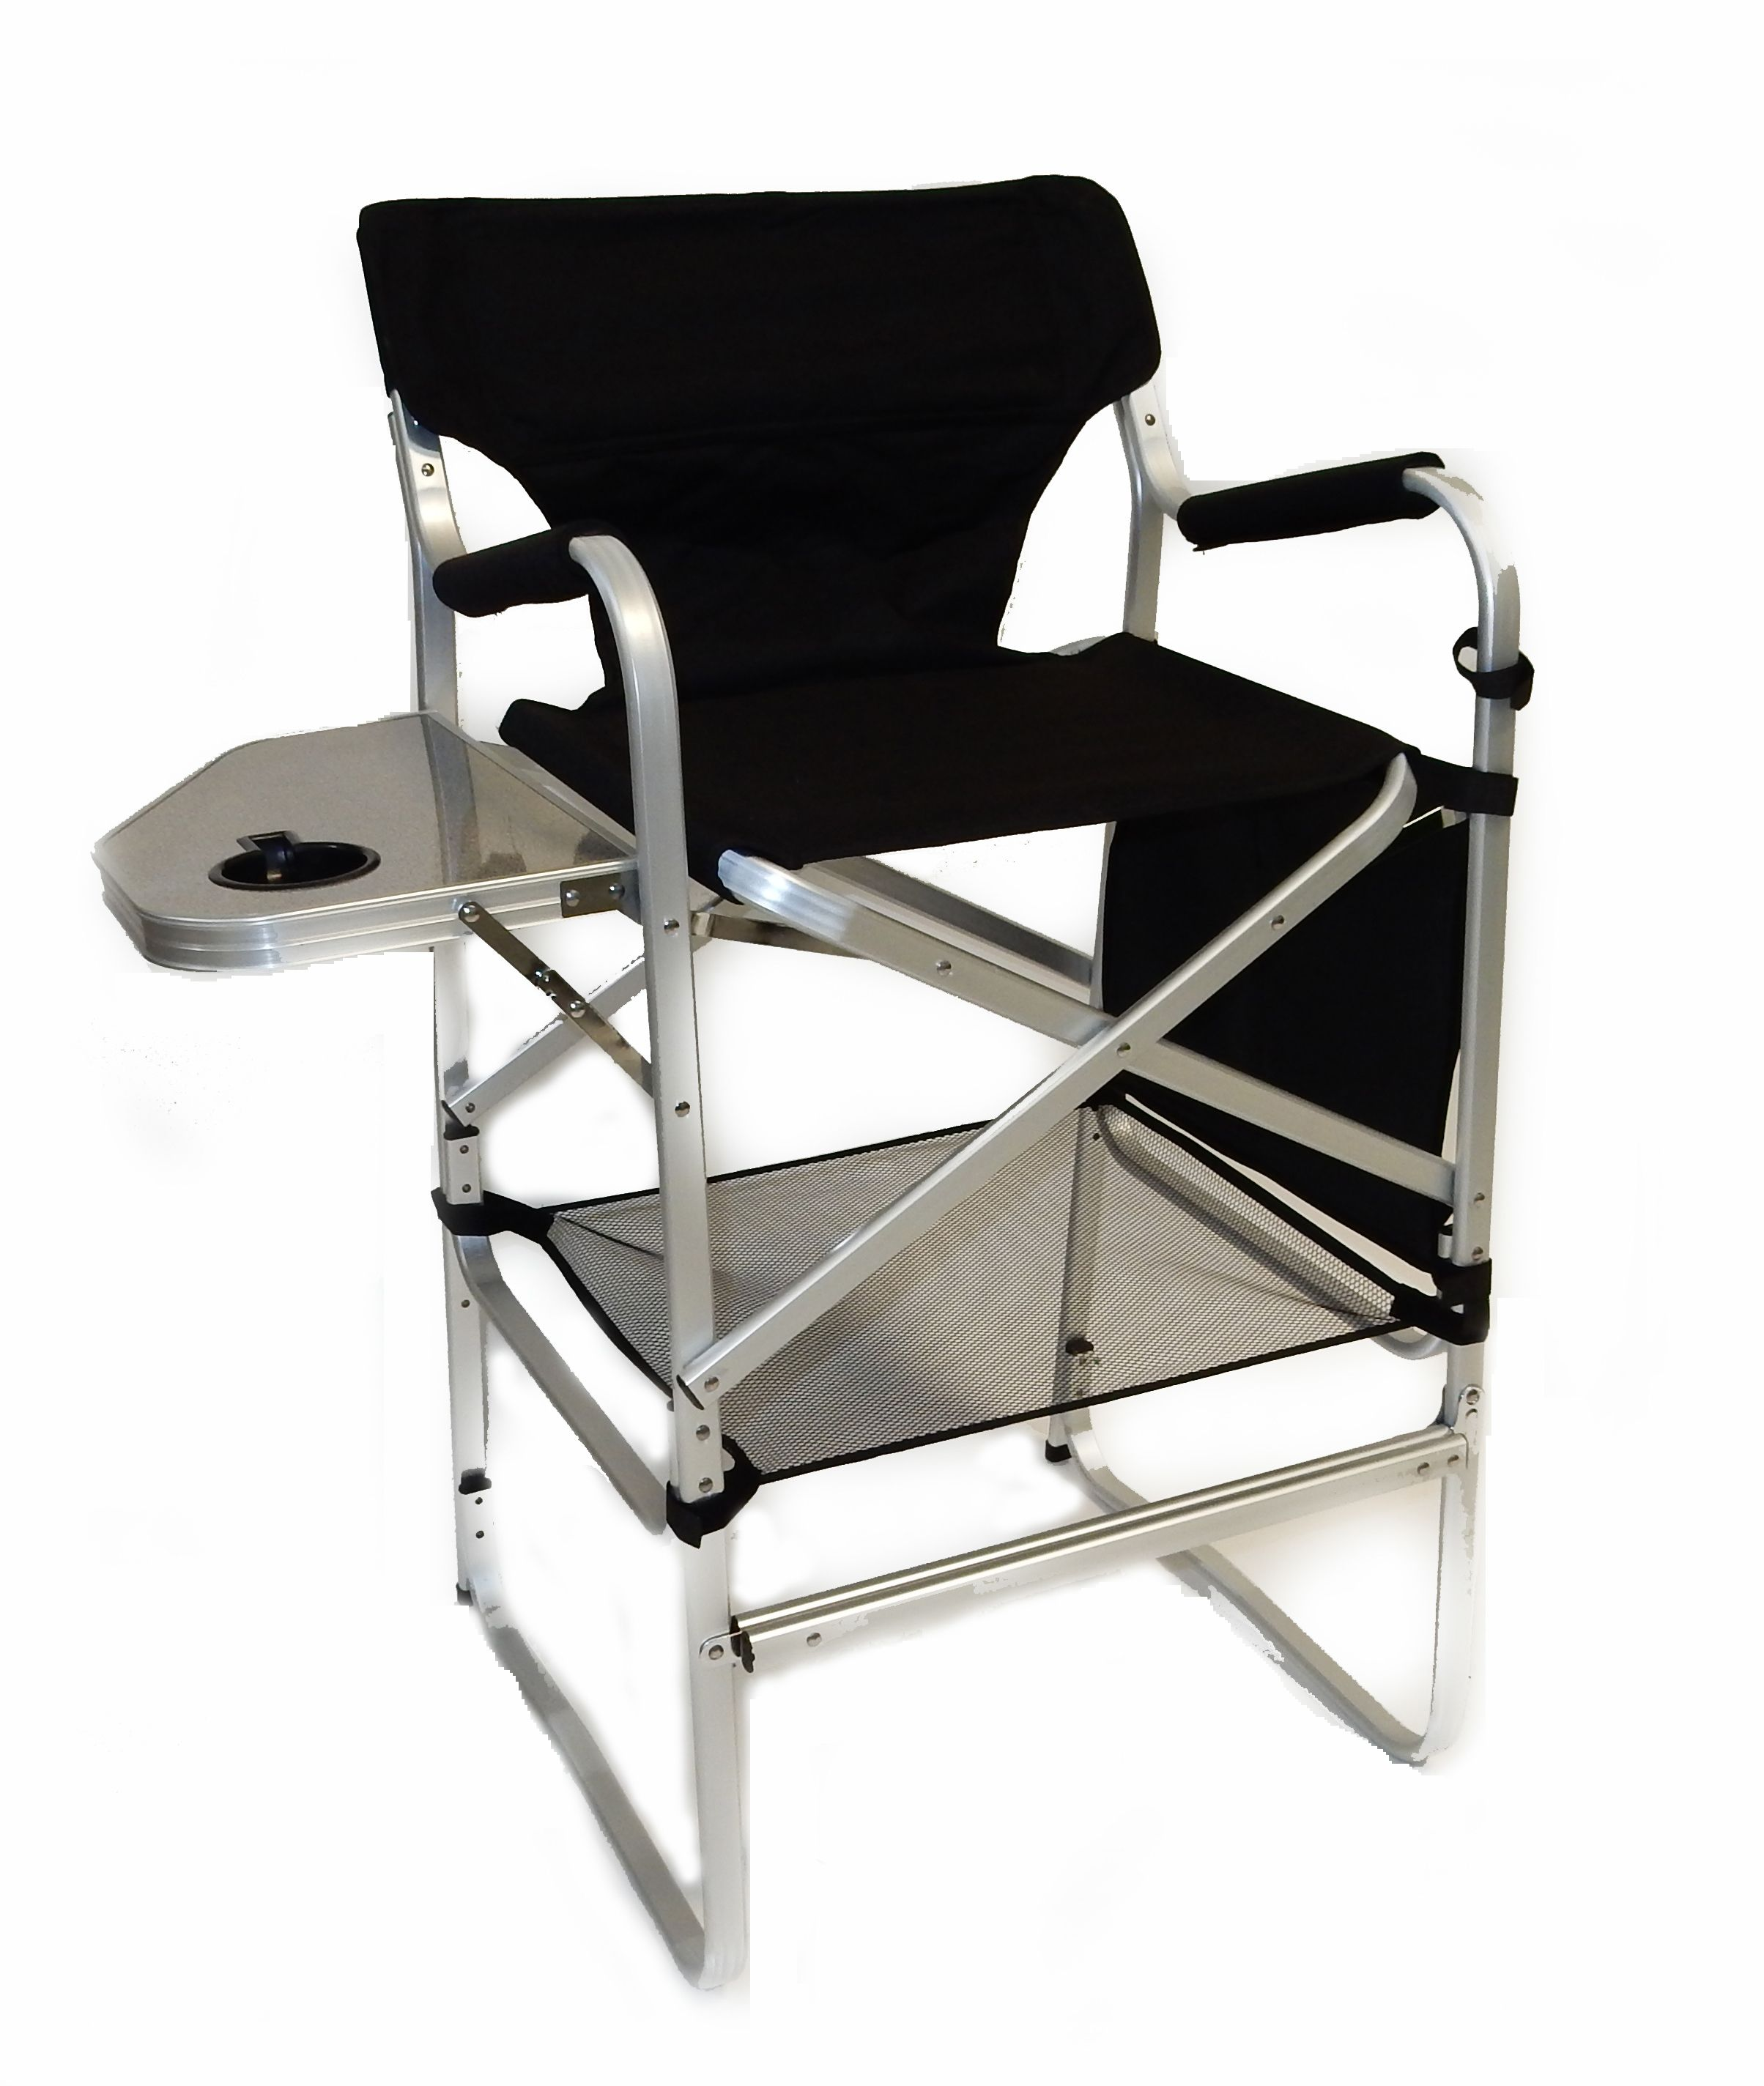 Deluxe tall folding director chair with side table and side bag